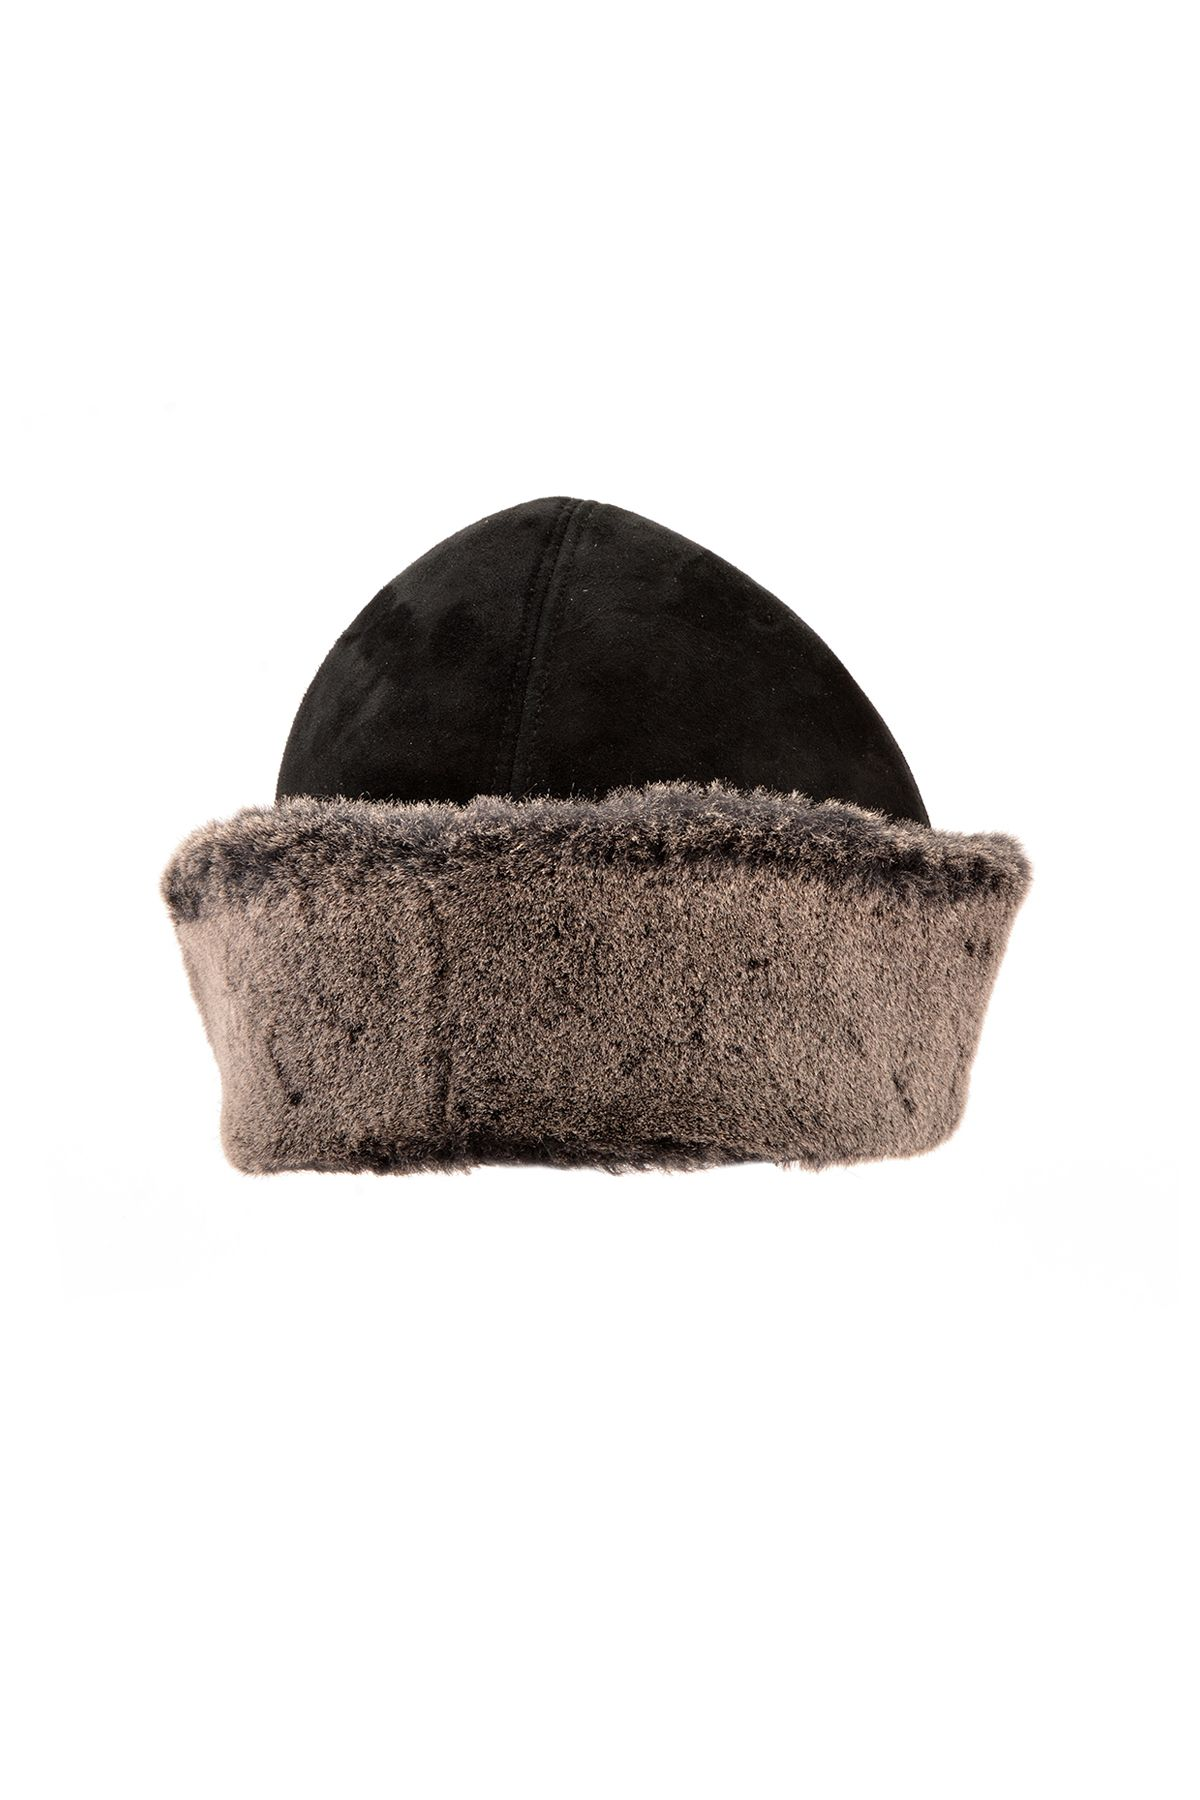 Pegia Ottoman Hat From Vintage Suede And Genuine Fur Black